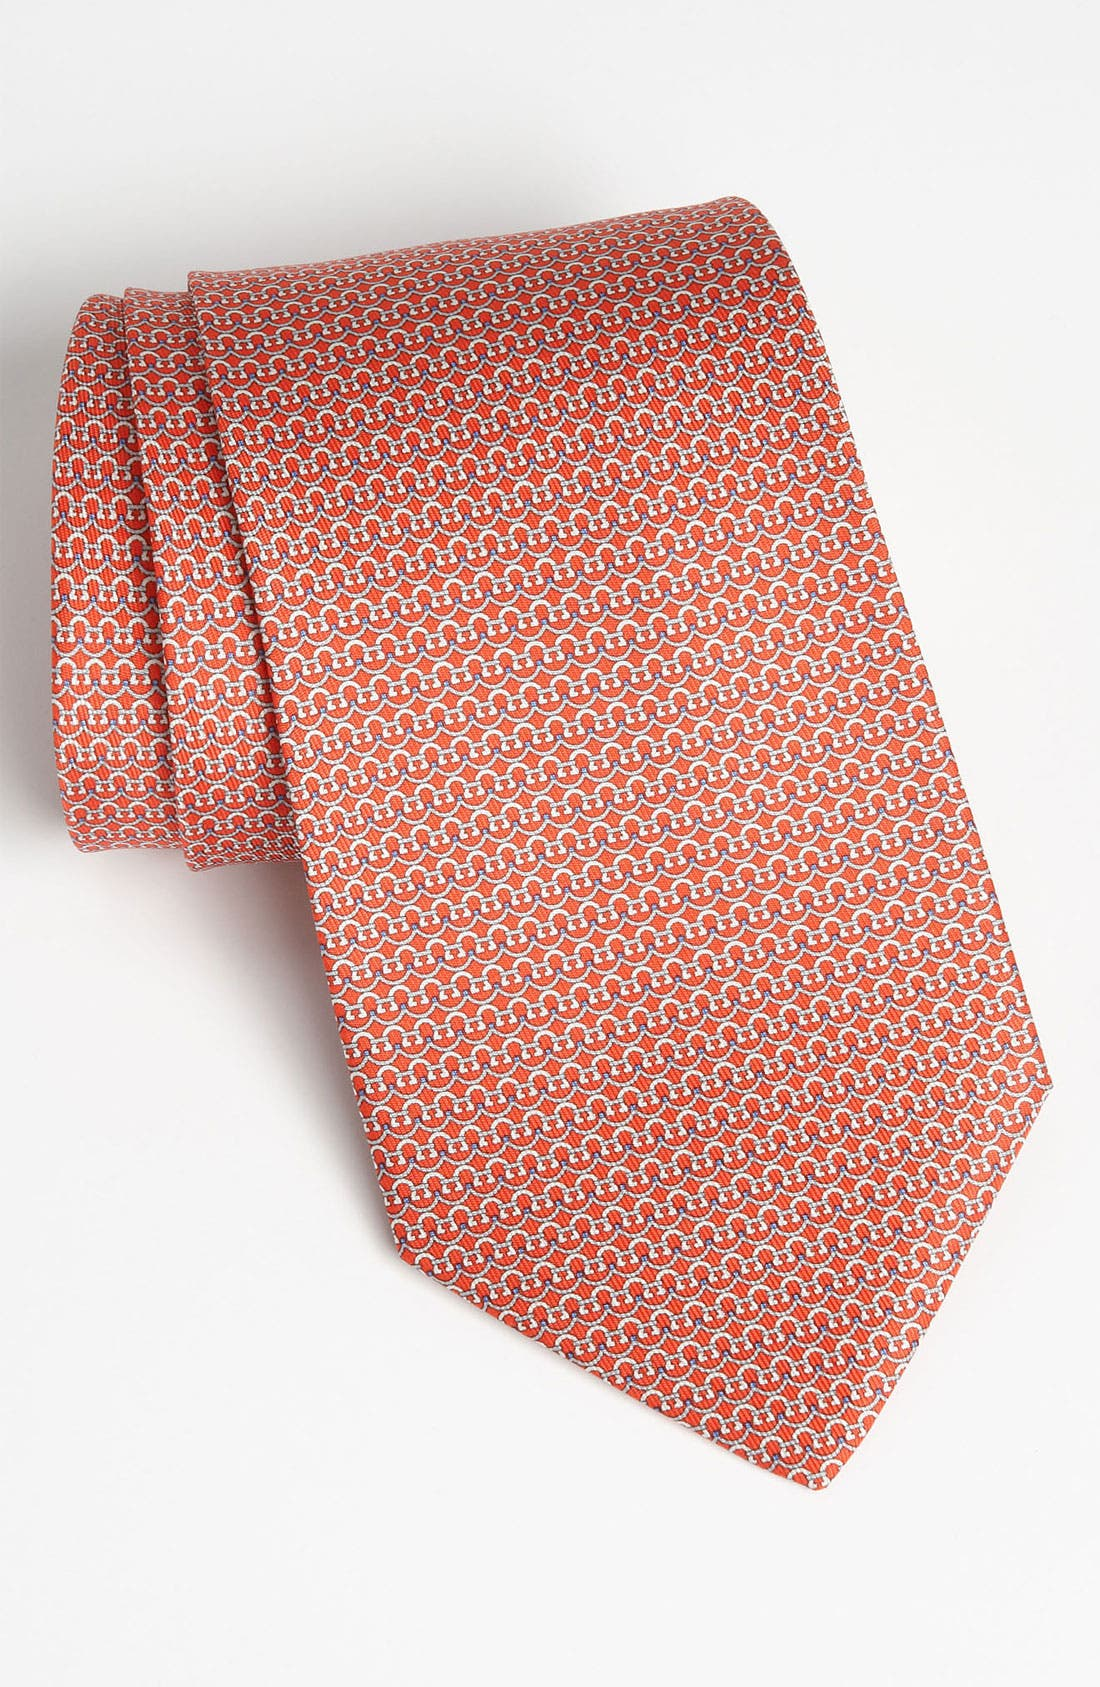 Alternate Image 1 Selected - Salvatore Ferragamo Woven Silk Tie